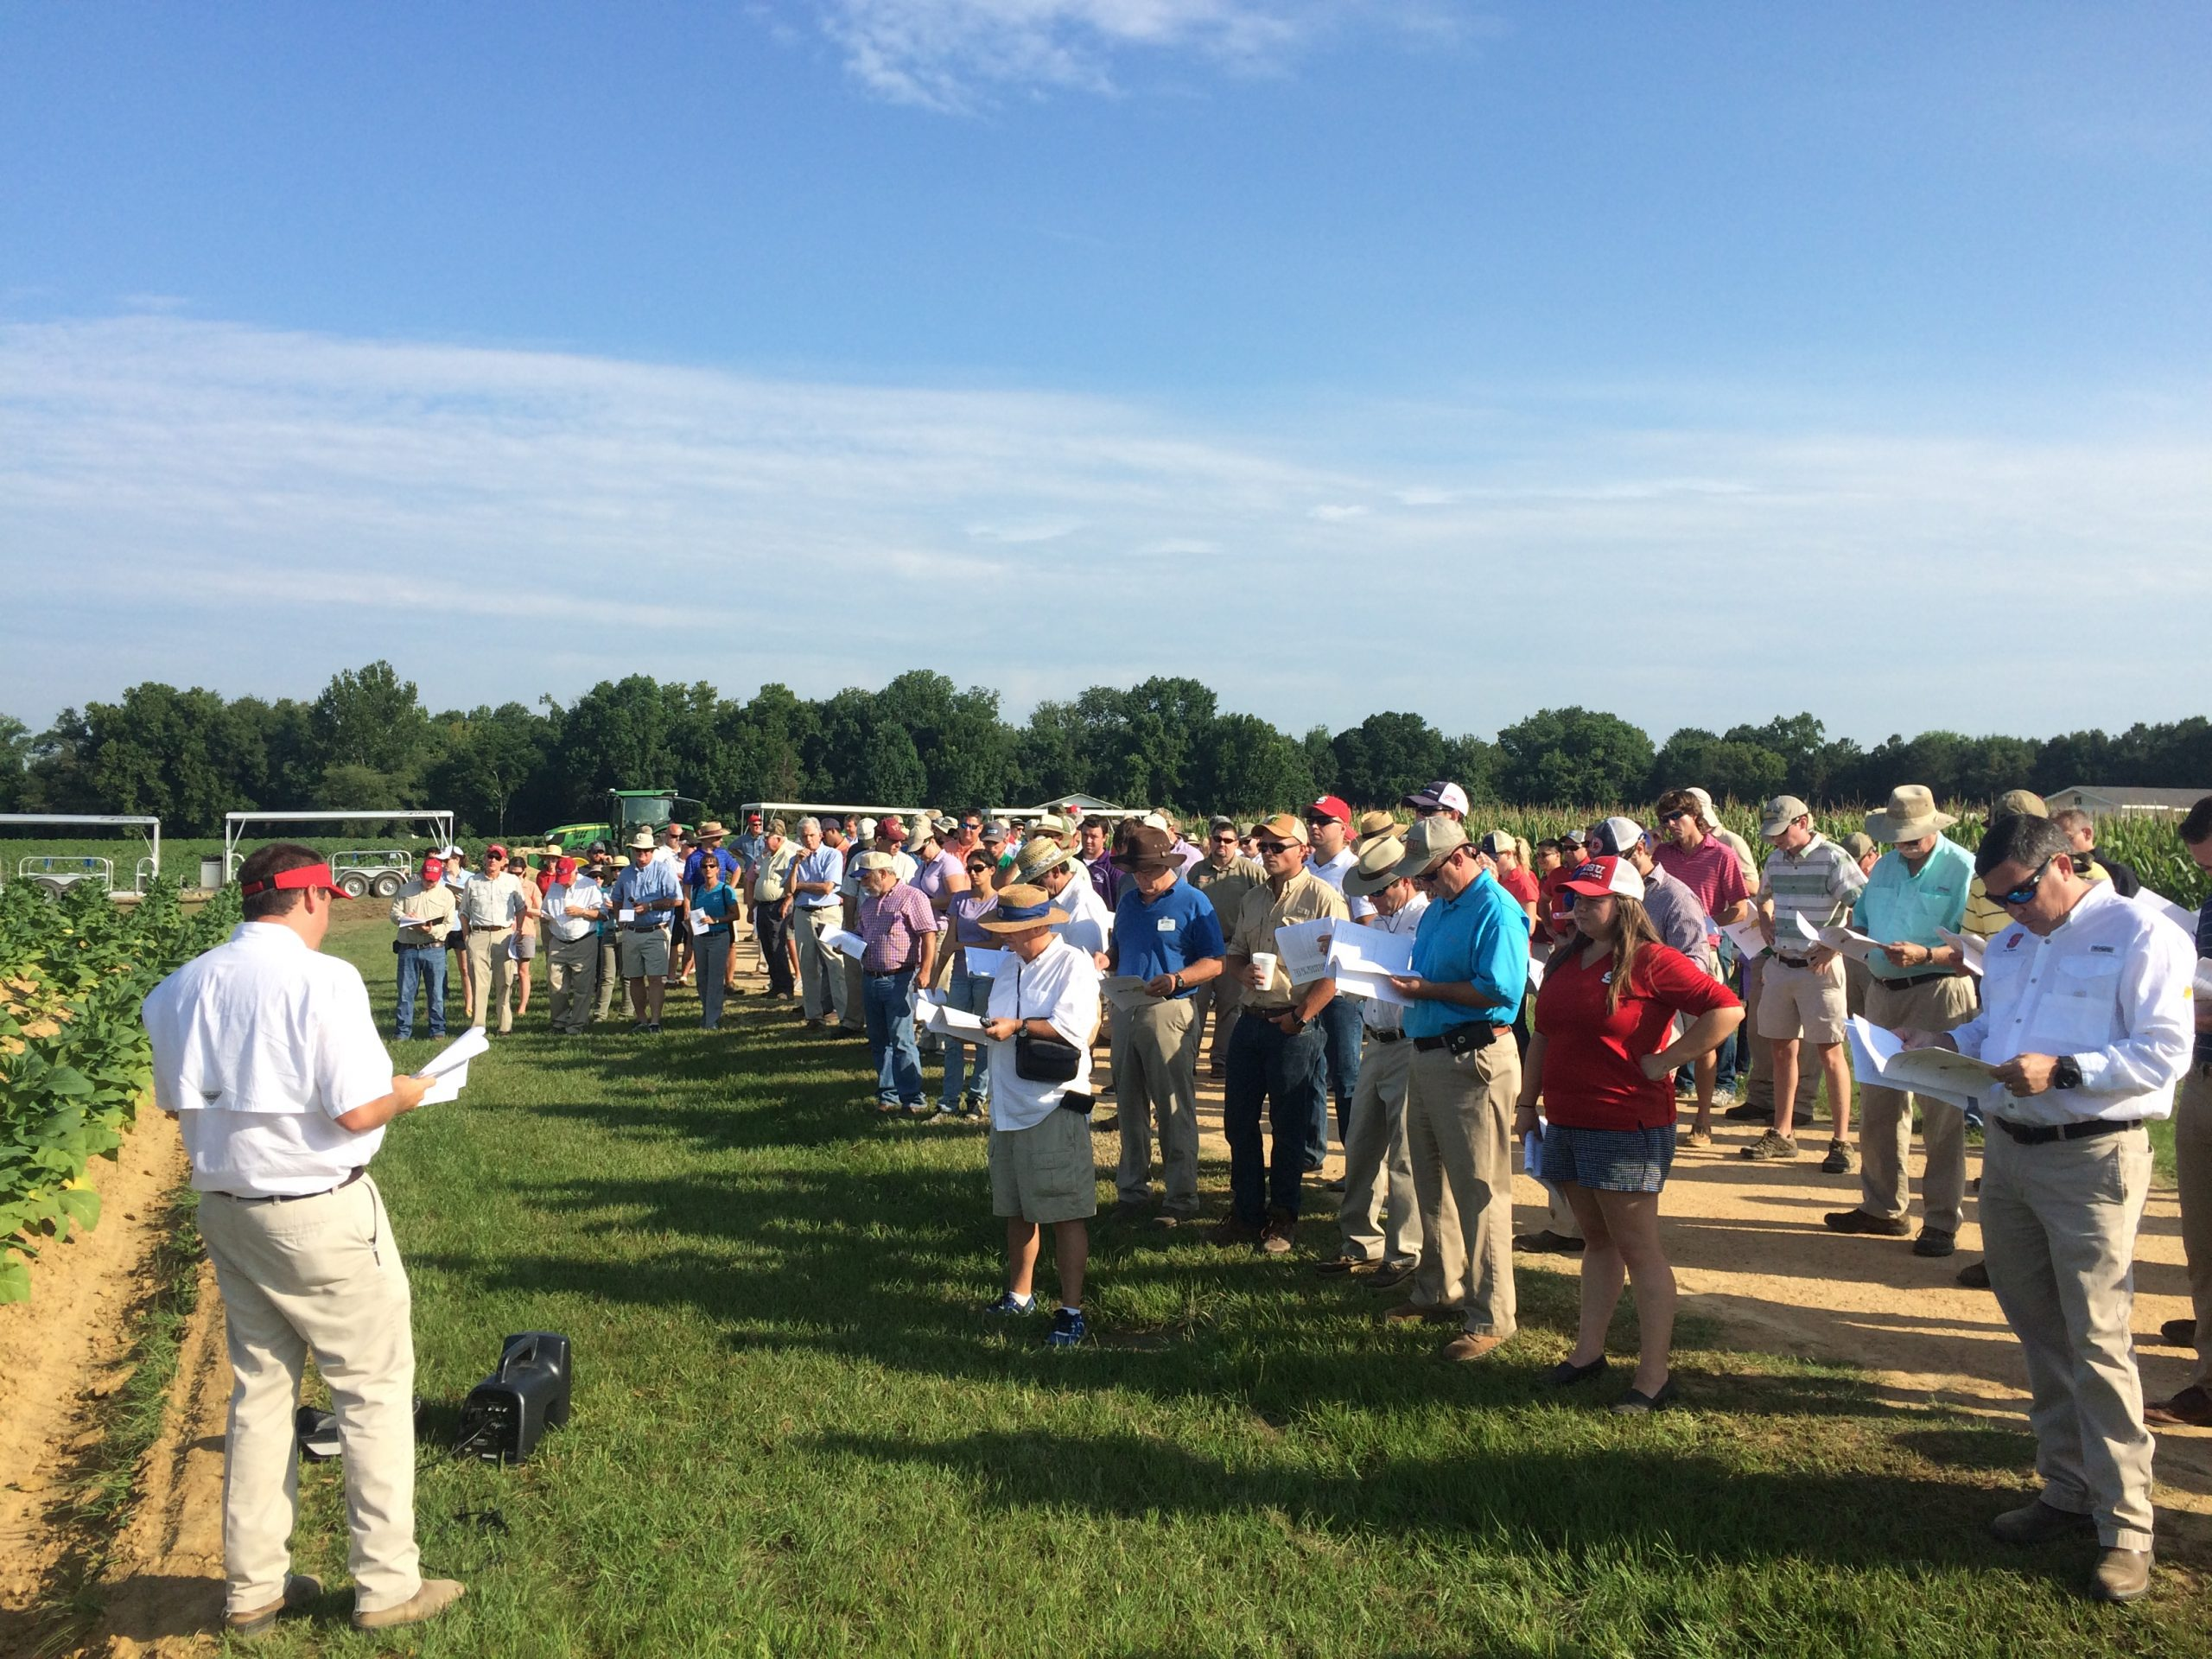 A crowd of people listen to agronomist at a tobacco field